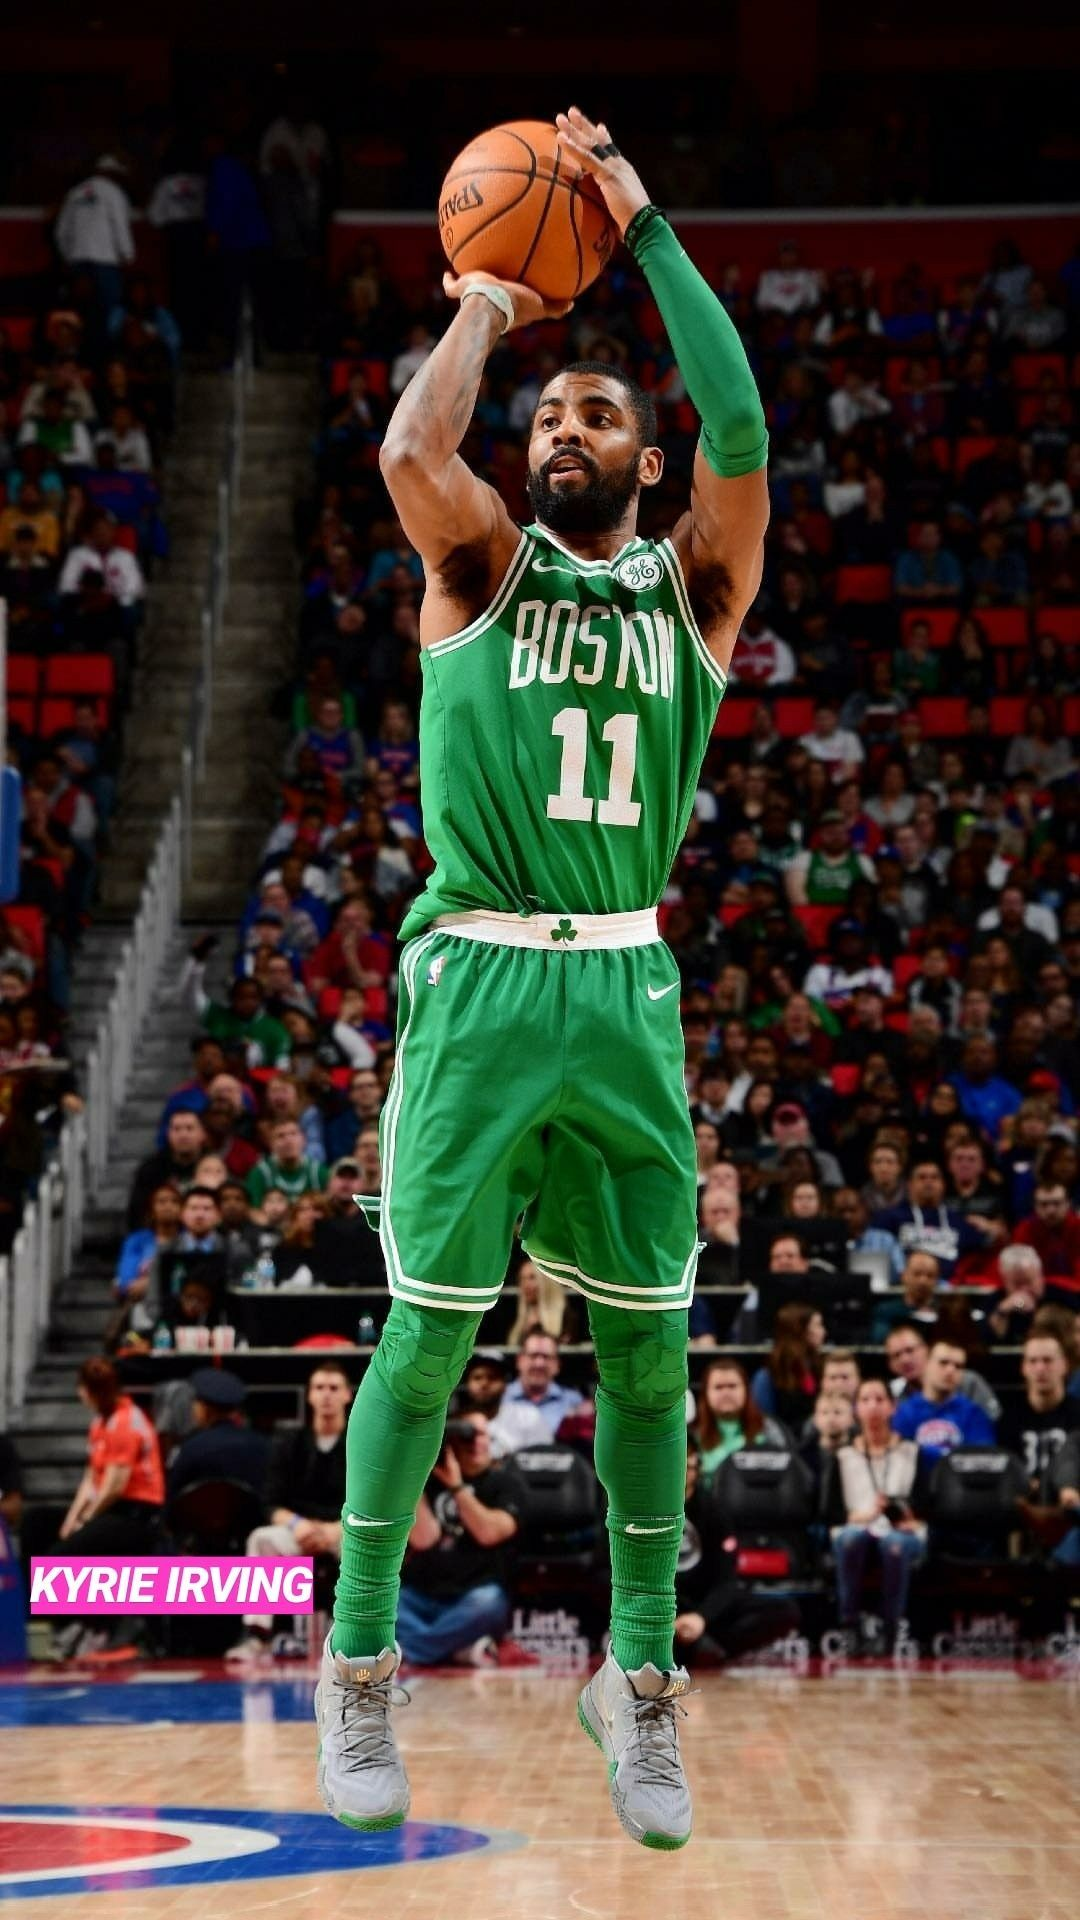 Kyrie Irving Nets Wallpaper Android Download Kyrie Irving Kyrie Kyrie Irving Celtics